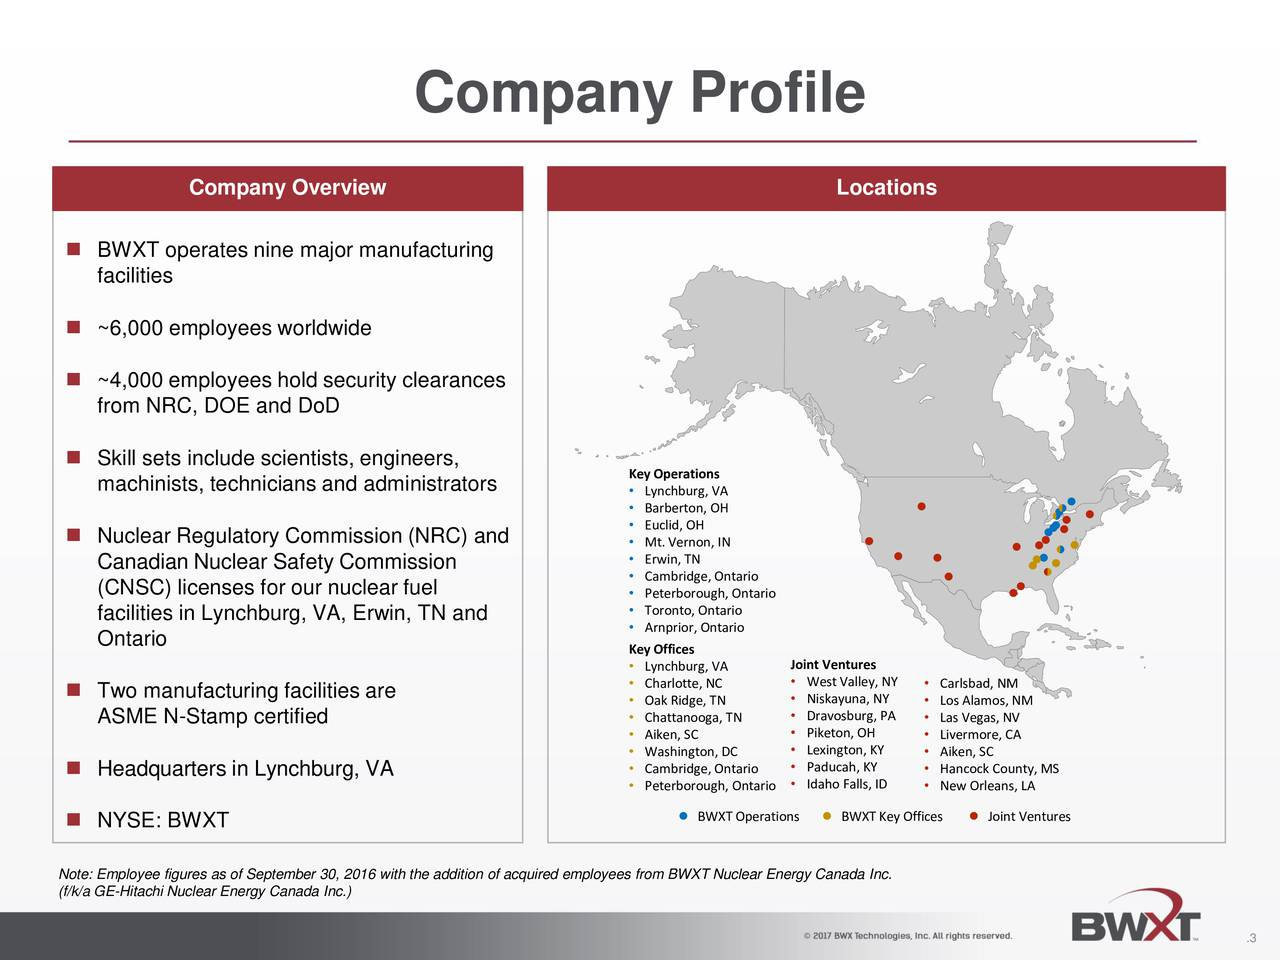 Company Overview Locations BWXT operates nine major manufacturing facilities ~6,000 employees worldwide ~4,000 employees hold security clearances from NRC, DOE and DoD Skill sets include scientists, engineers, KeyOperations machinists, technicians and administrators  Lynchburg, VA Barberton, OH Euclid, OH Nuclear Regulatory Commission (NRC) and  Mt. Vernon, IN Canadian Nuclear Safety Commission  Erwin, TN Cambridge, Ontario (CNSC) licenses for our nuclear fuel  Peterborough, Ontario facilities in Lynchburg, VA, Erwin, TN and  Toronto, Ontario Arnprior, Ontario Ontario KeyOffices Lynchburg, VA Joint Ventures Charlotte, NC  WestValley, NY  Carlsbad, NM Two manufacturing facilities are  Oak Ridge, TN  Niskayuna, NY  Los Alamos, NM ASME N-Stamp certified  Chattanooga, TN  Dravosburg, PA  Las Vegas, NV Aiken, SC  Piketon, OH  Livermore, CA Washington, DC  Lexington, KY  Aiken, SC Headquarters in Lynchburg, VA  Cambridge, Ontario  Paducah, KY  Hancock County, MS Peterborough, OntarioIdaho Falls, ID New Orleans, LA NYSE: BWXT BWXTOperations BWXTKey Offices Joint Ventures Note: Employee figures as of September 30, 2016 with the addition of acquired employees from BWXT Nuclear Energy Canada Inc. (f/k/a GE-Hitachi Nuclear Energy Canada Inc.) .3